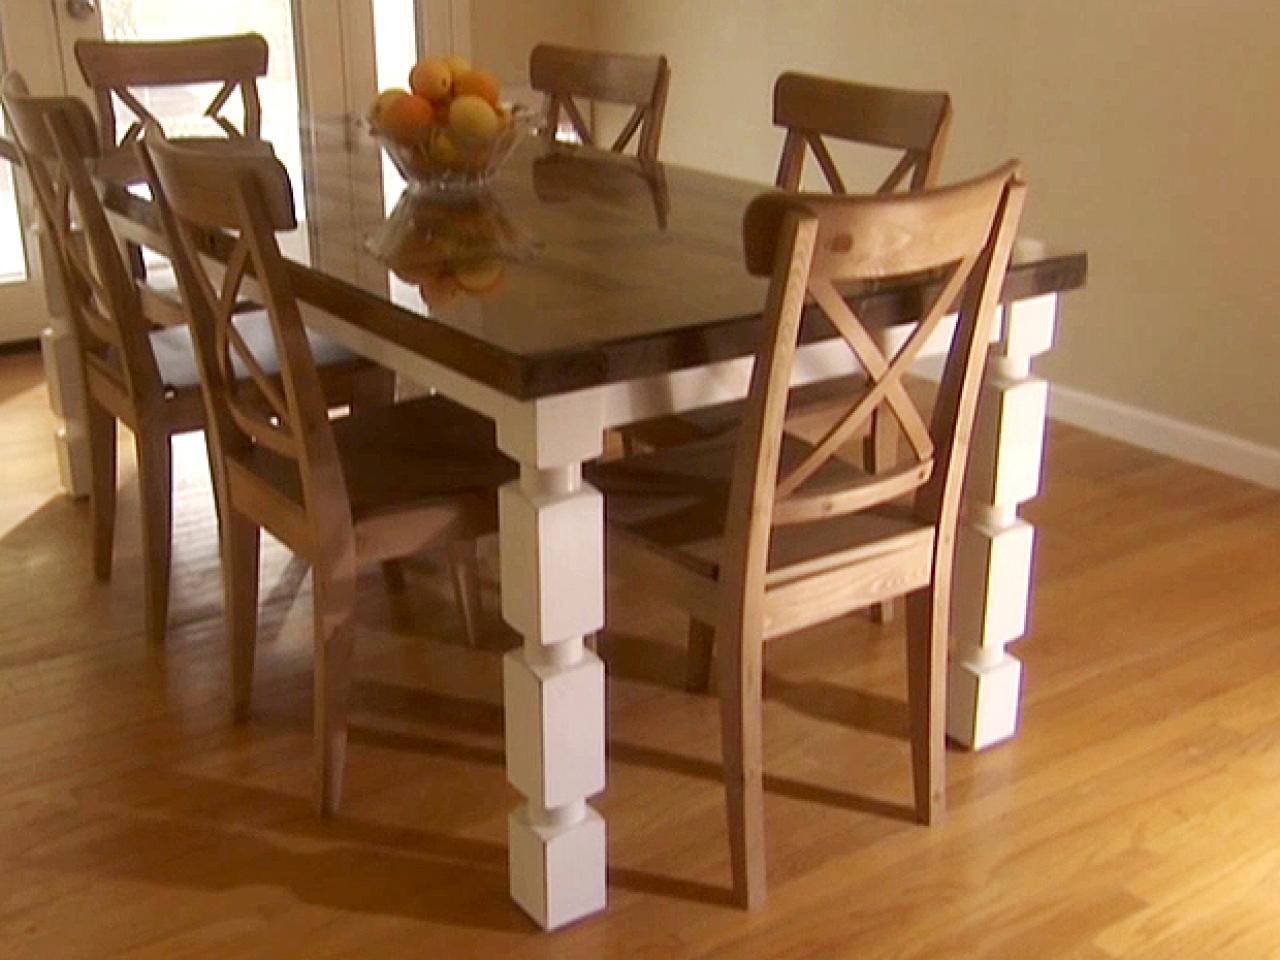 How to build a dining table from an old door and posts hgtv Table making ideas